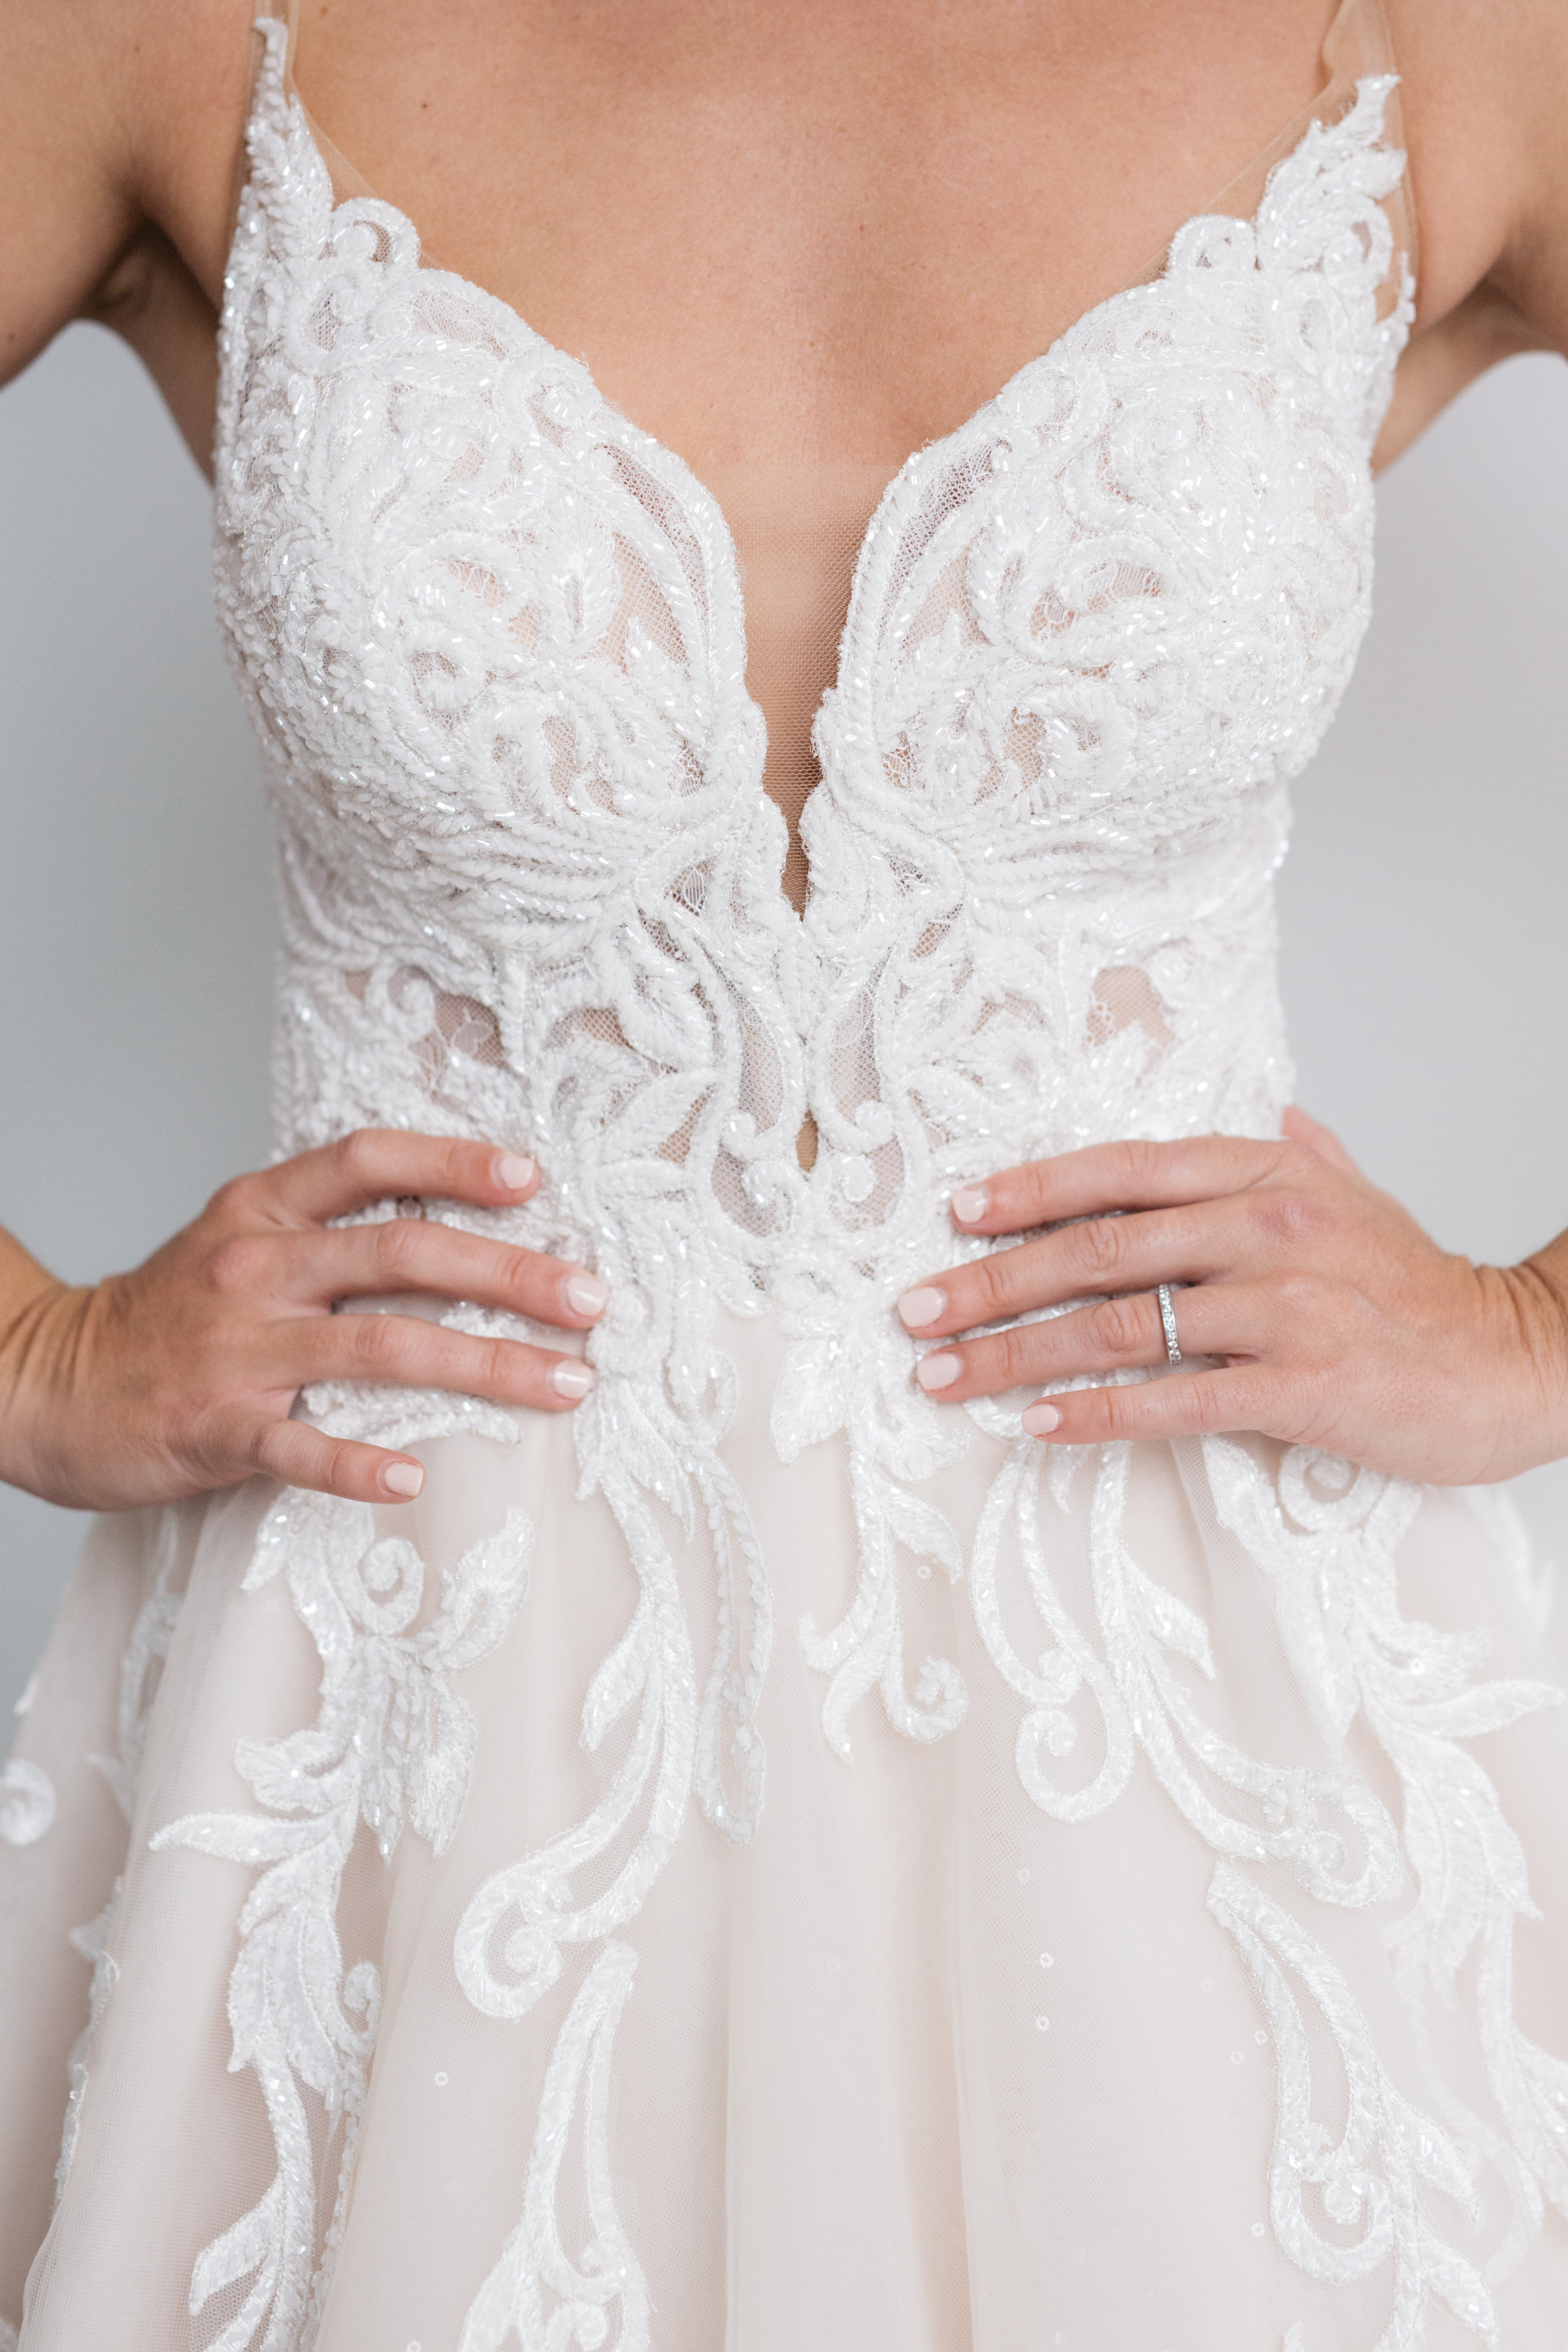 panama city bridal boutique.jpg